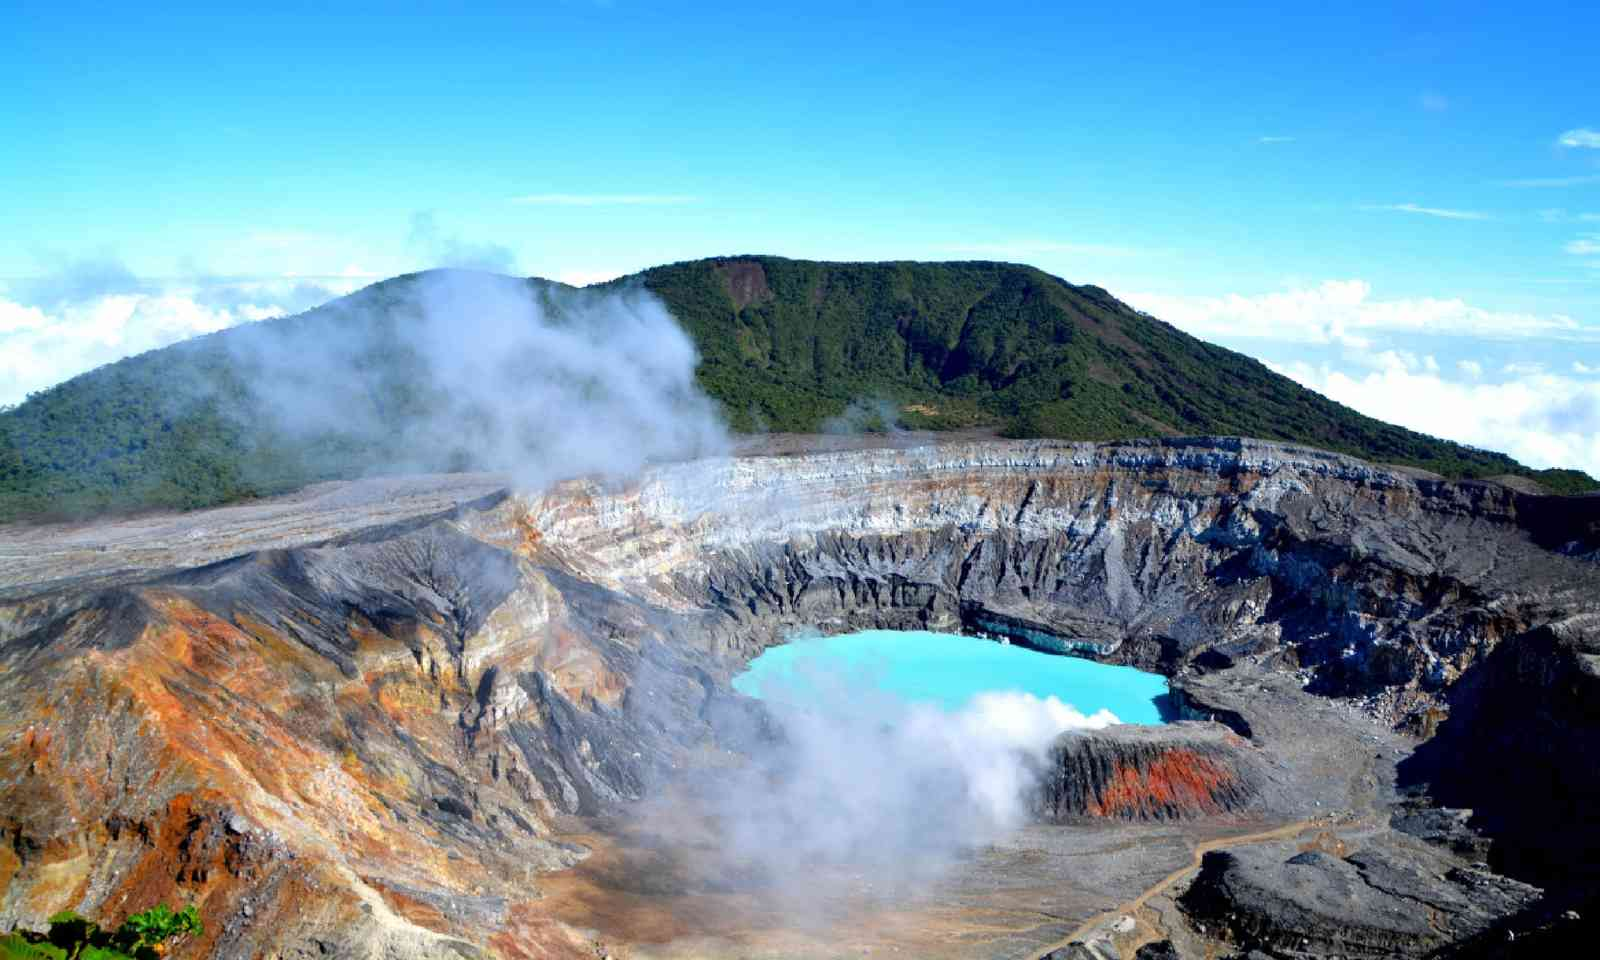 Crater by the lake of the Poas volcano (Shutterstock)